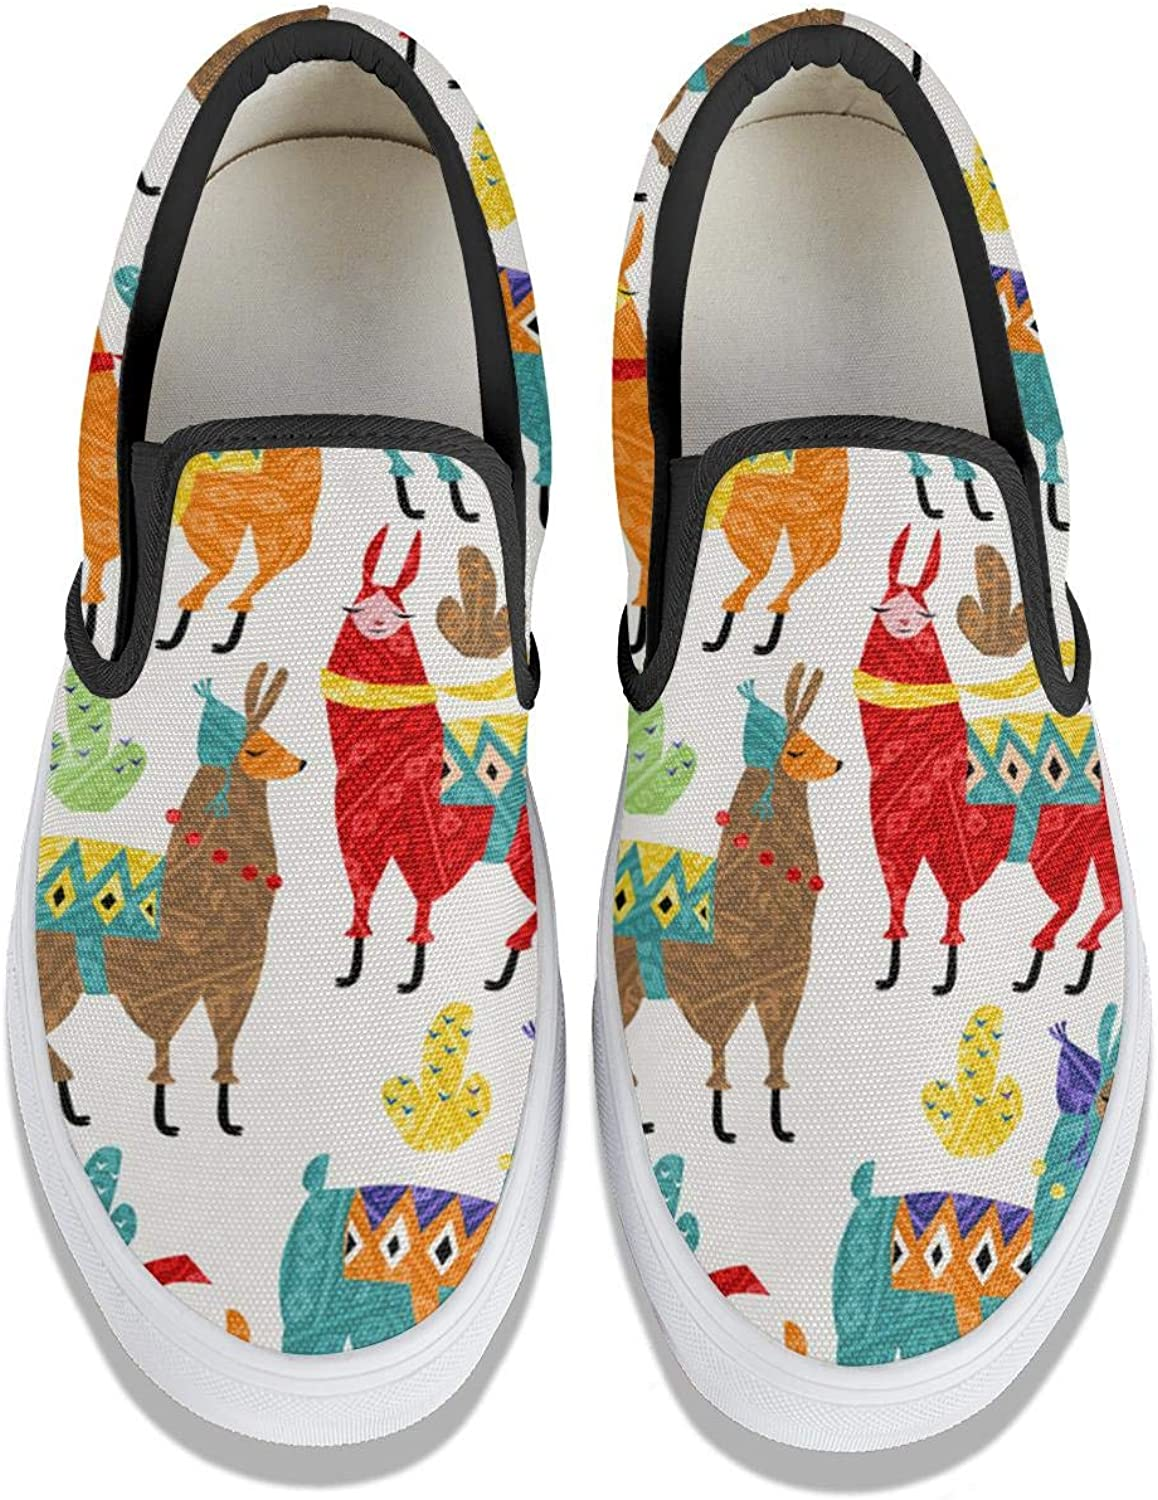 Not applicable Llamas 1 Womens Classic Slip-ons Tennis Sneakers Low Top Canvas Walking Shoes